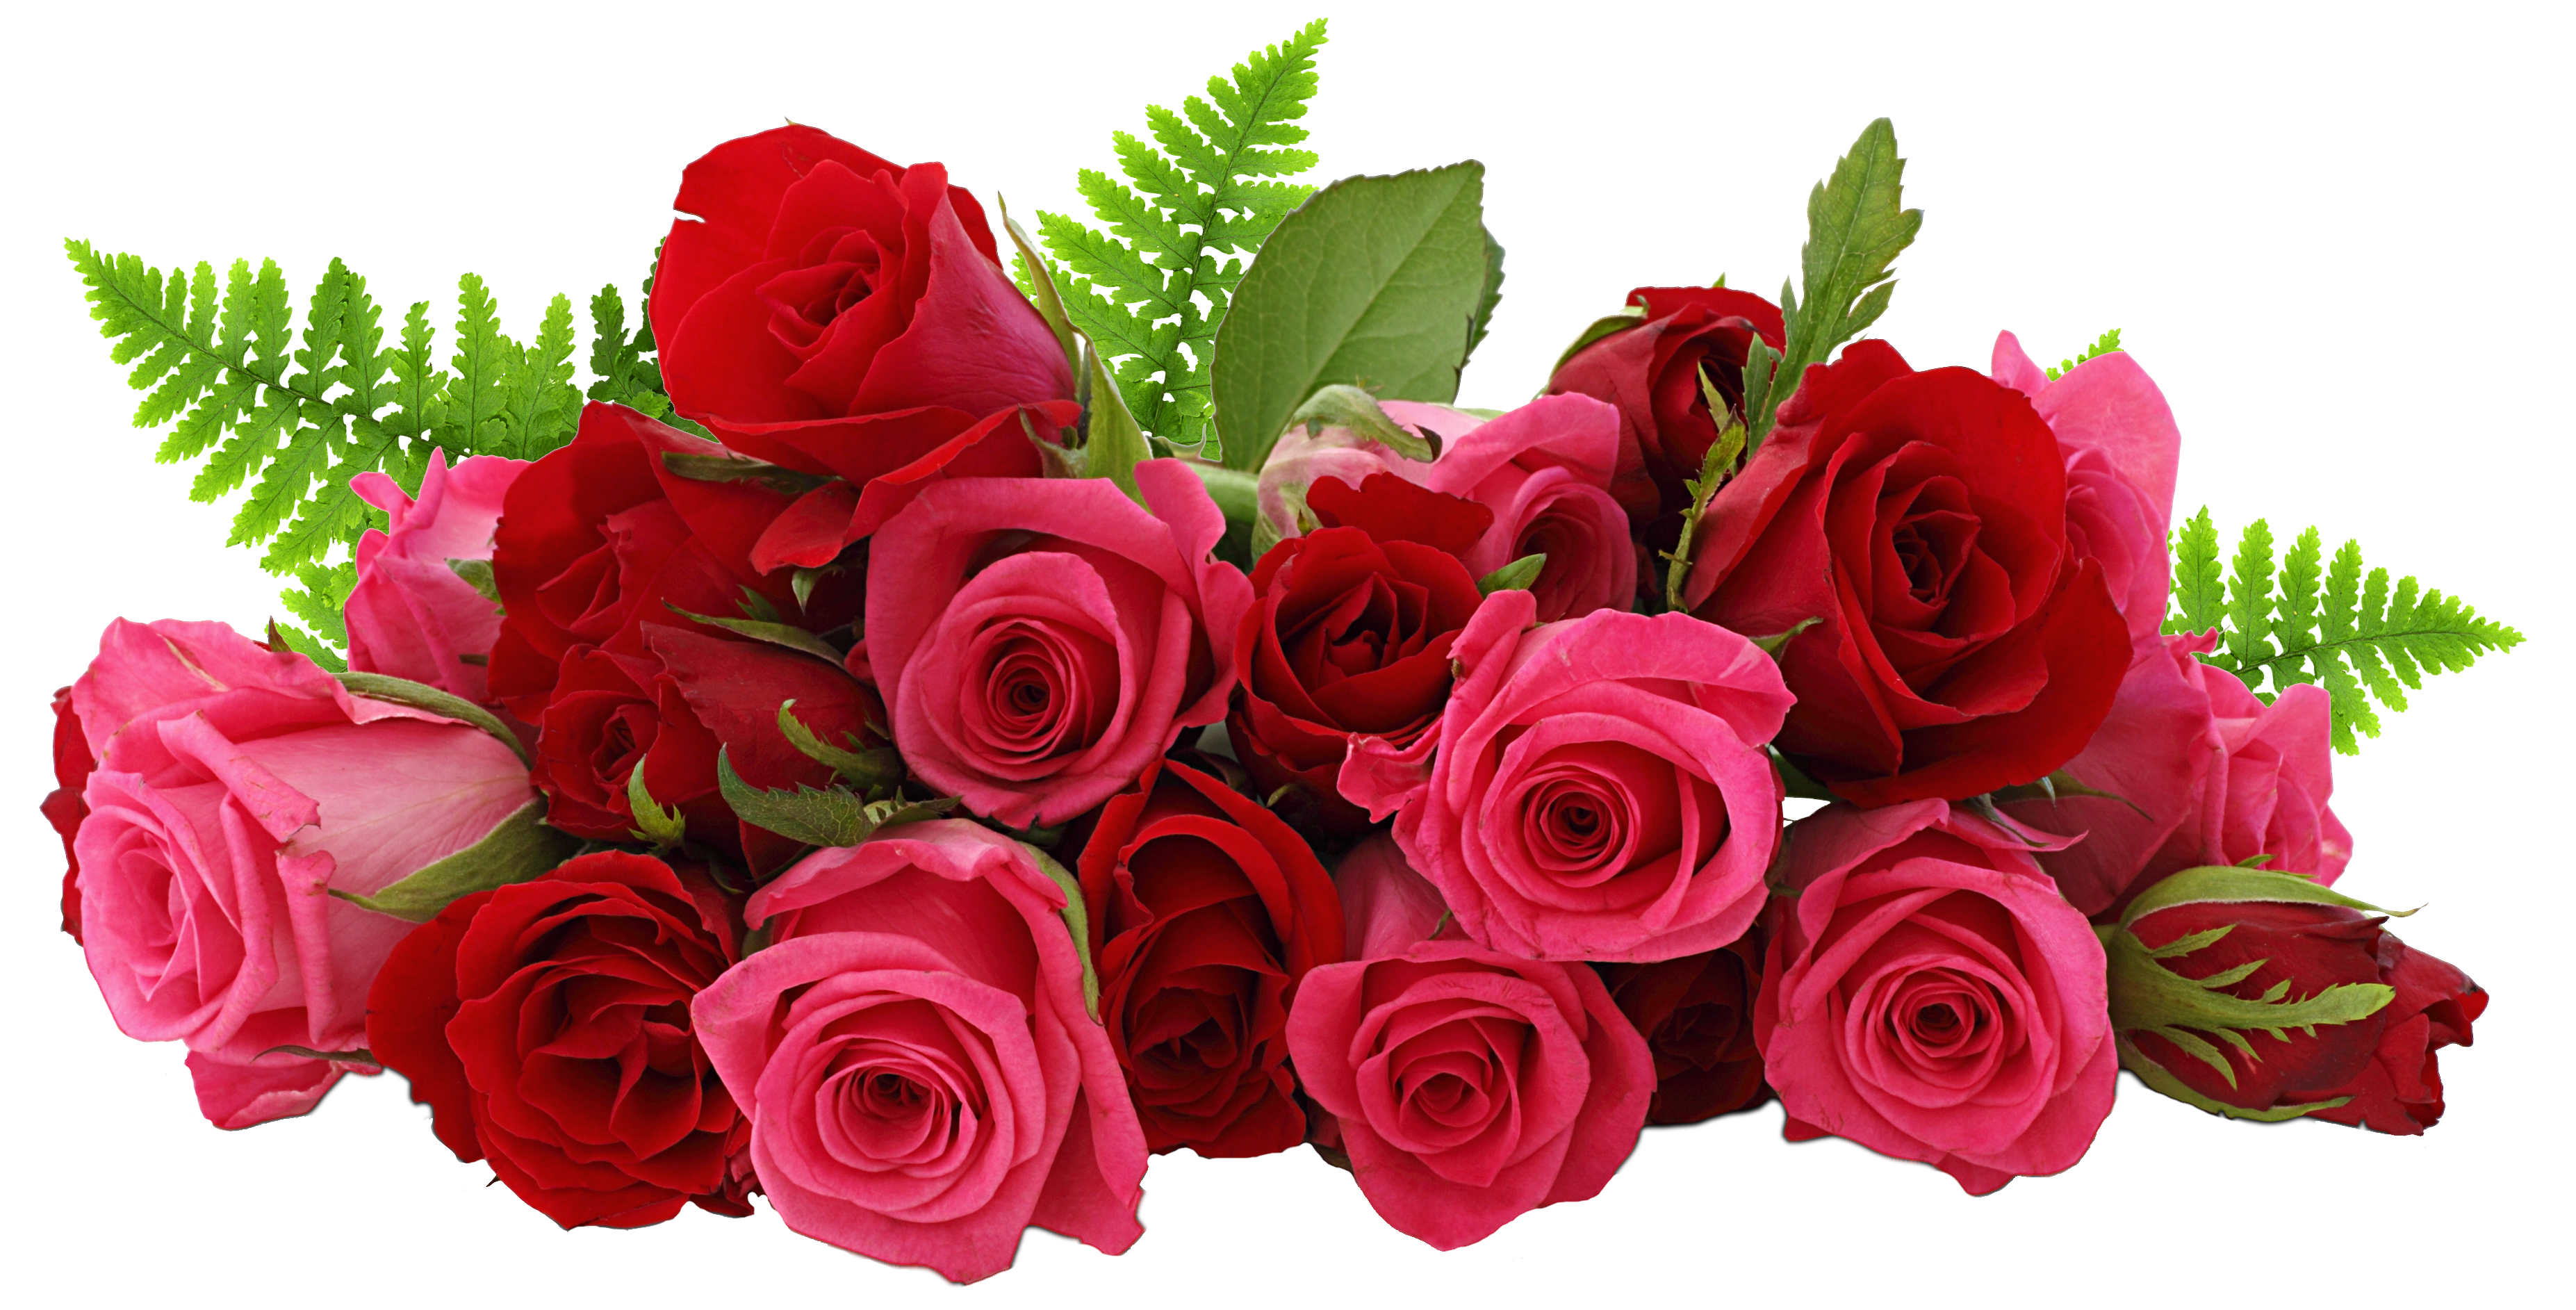 Rose bouquet transparent png. Download free image and